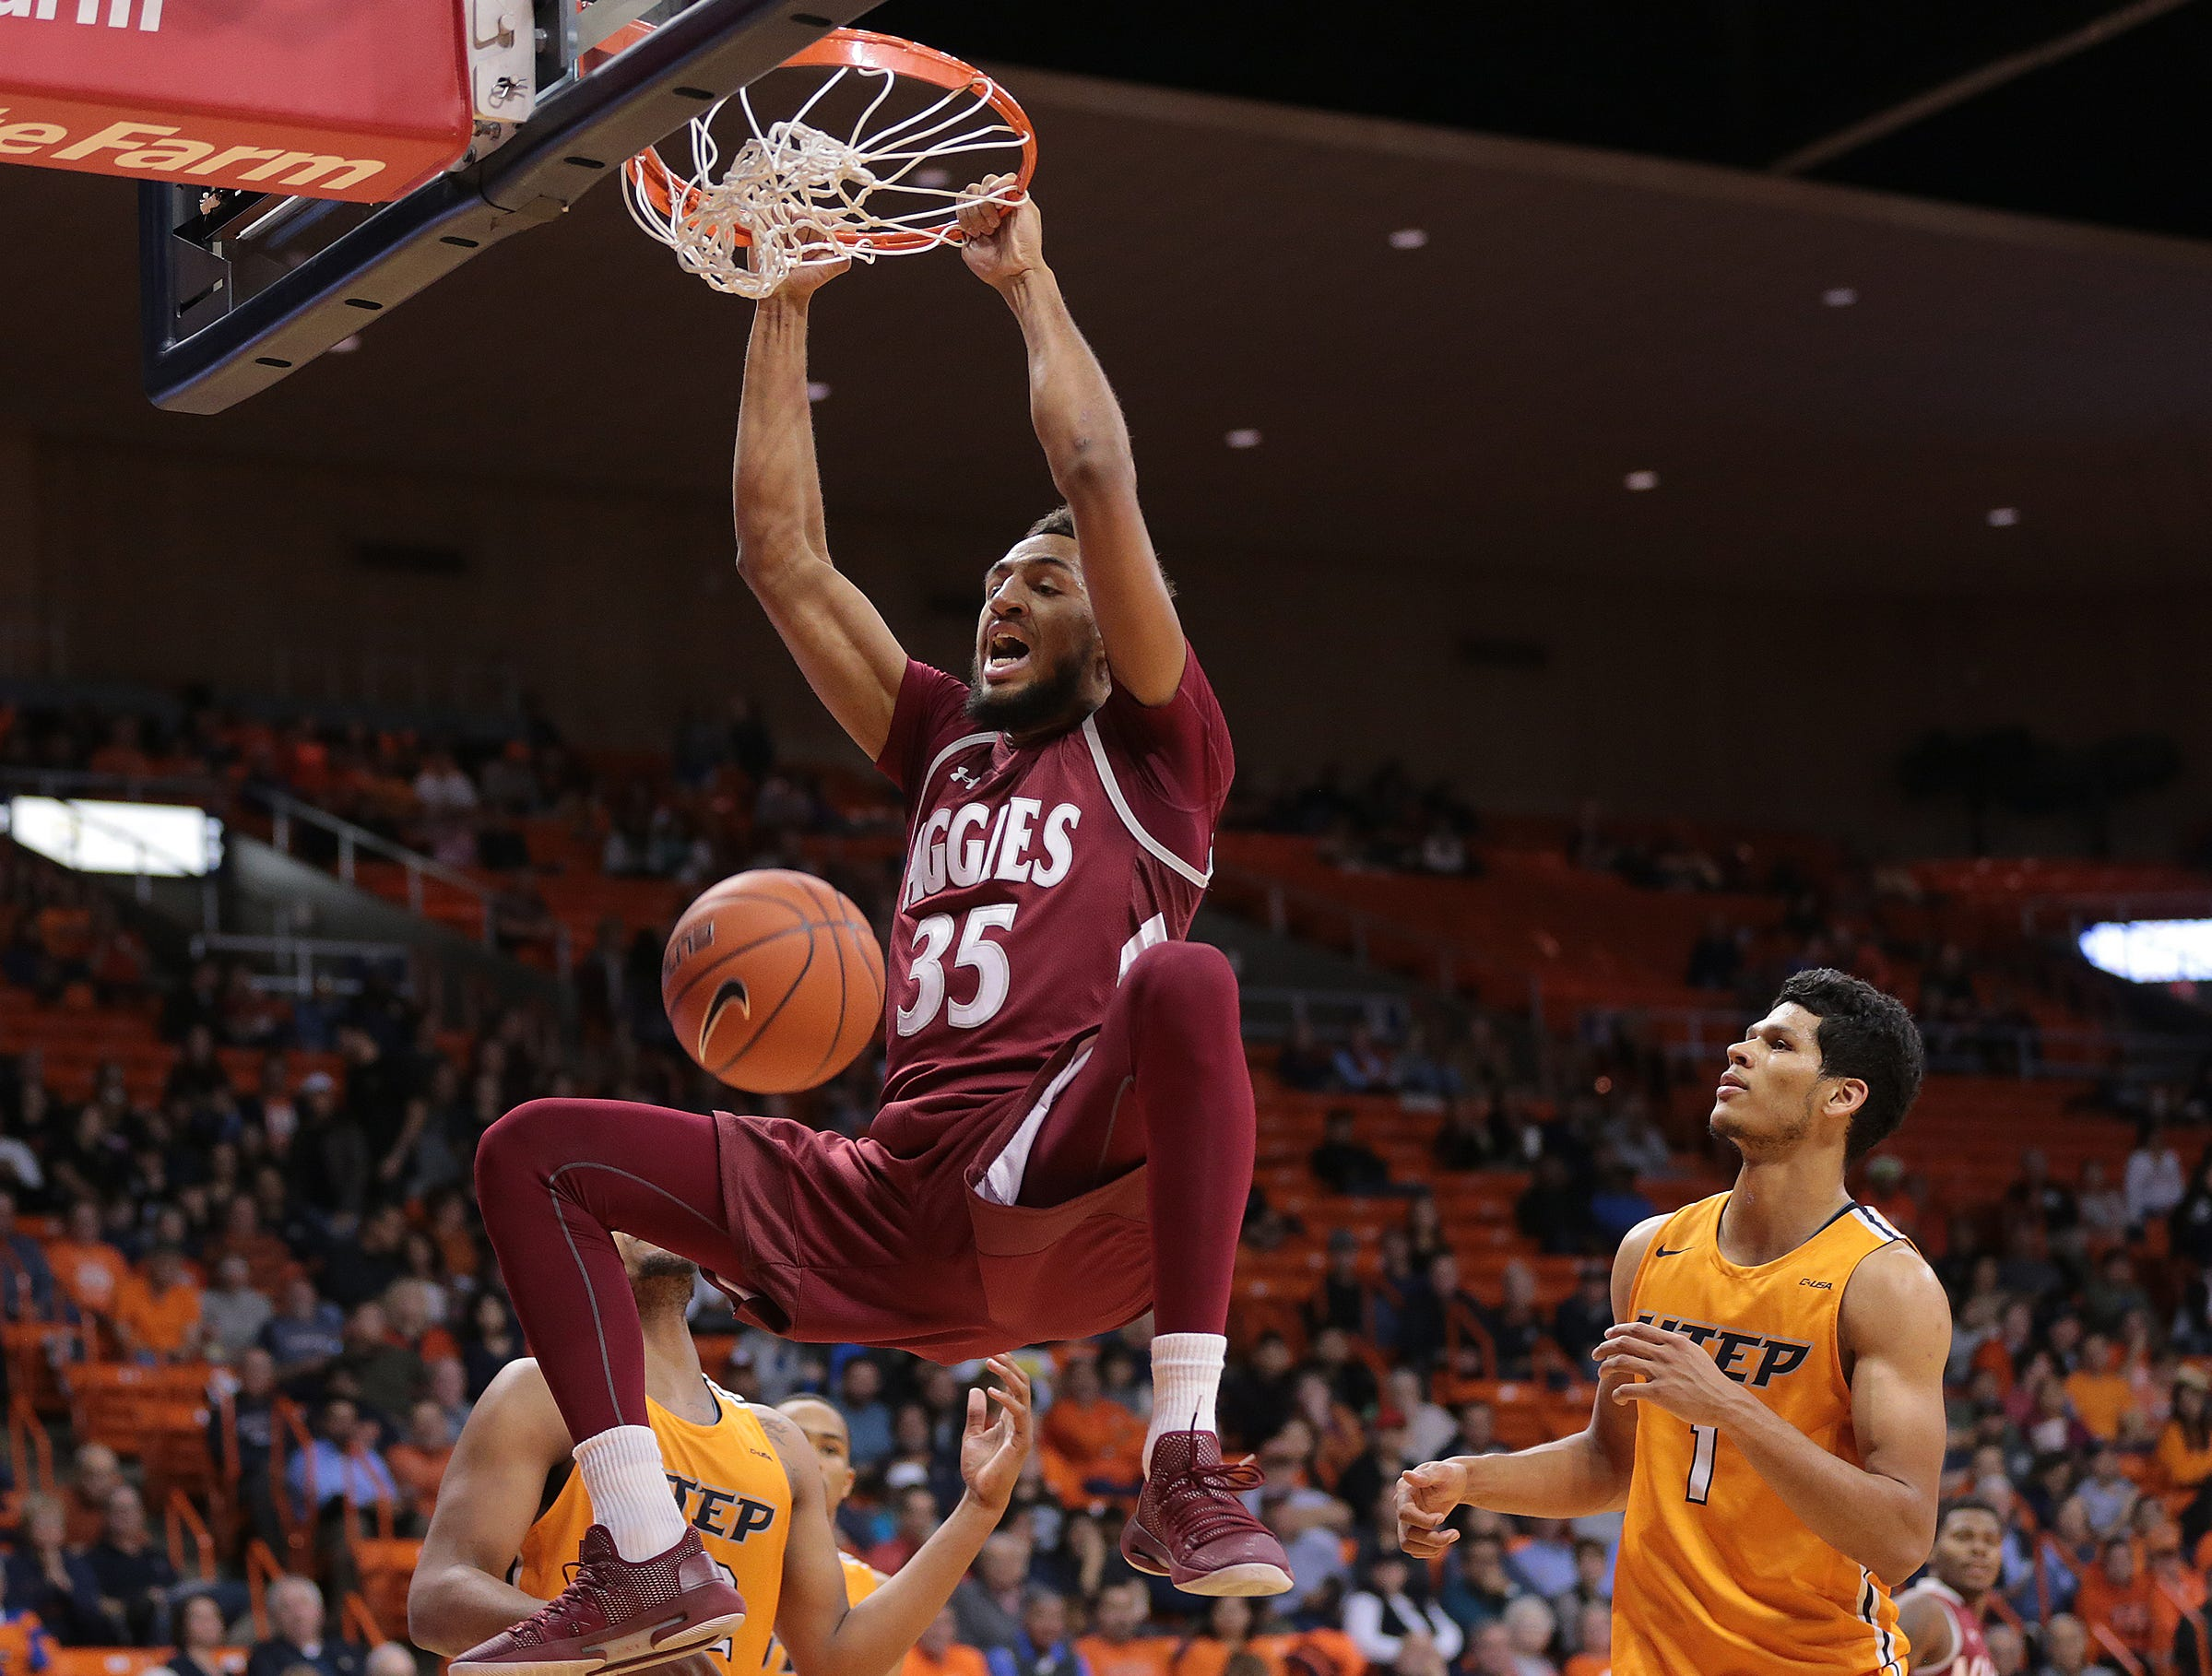 UTEP battled NMSU on Wednesday night at the Don Haskins Center. NMSU held on to win the game 62-58.